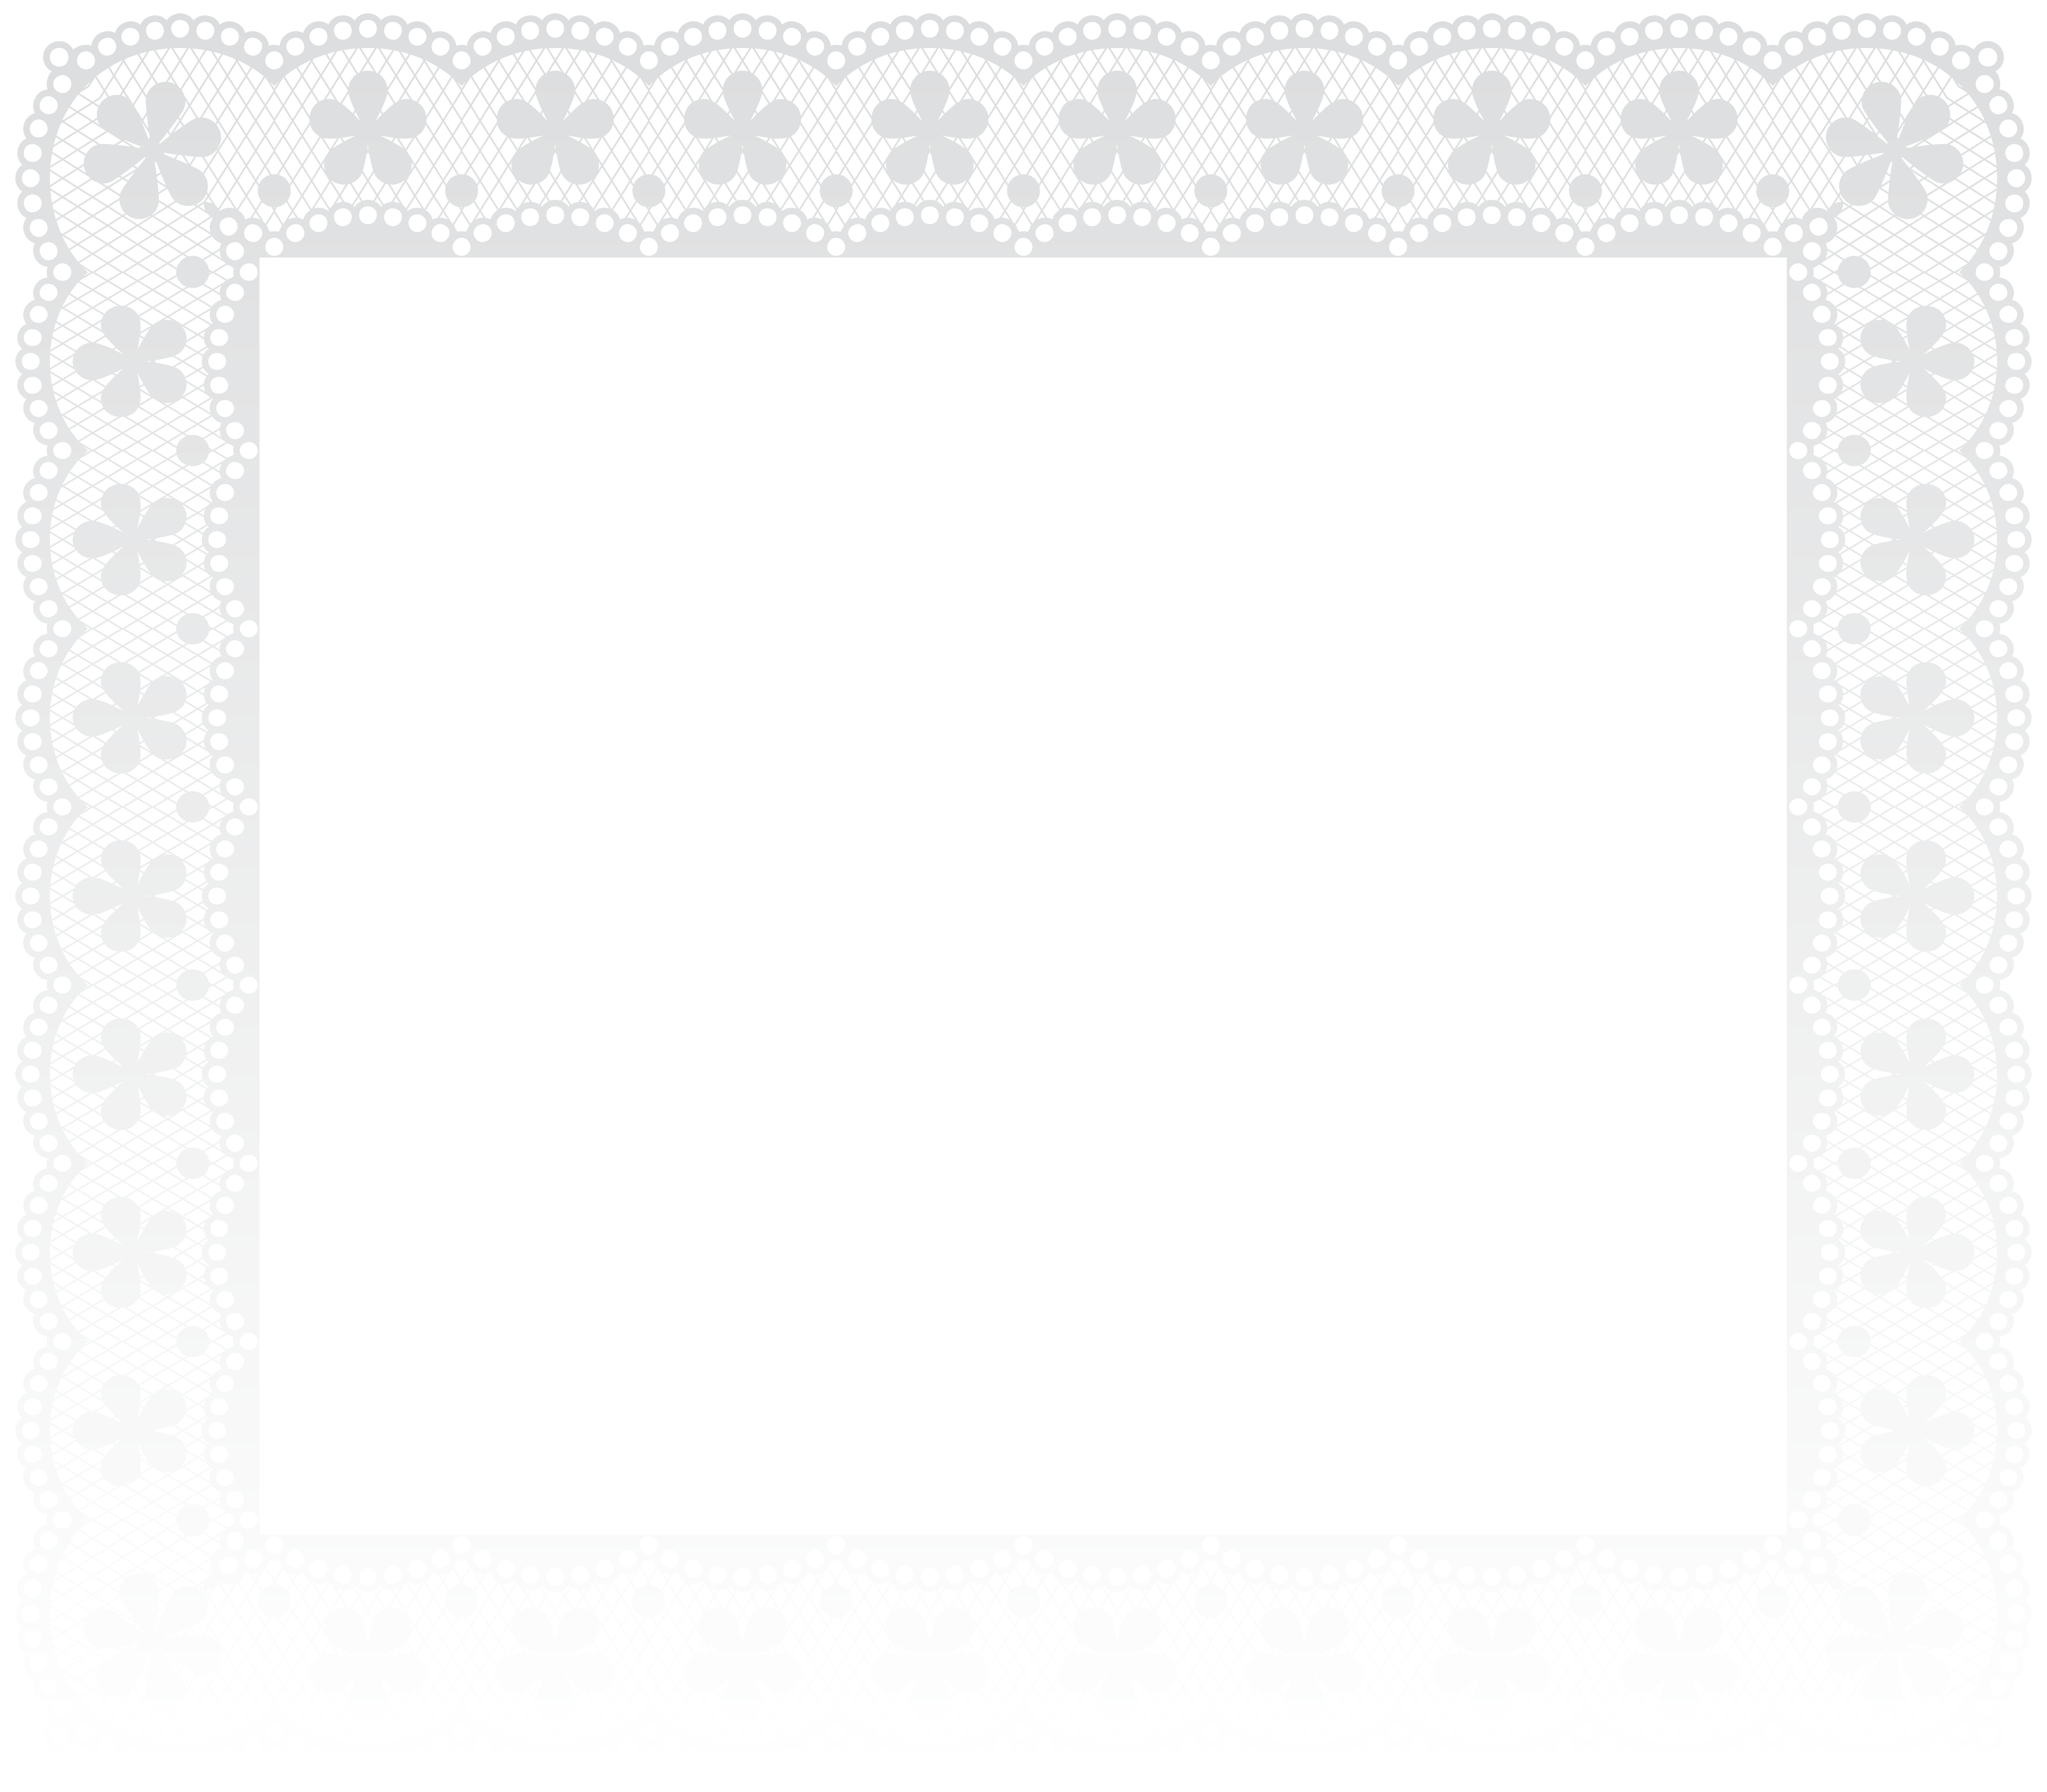 Lace clipart brown lace. Border frame png clip